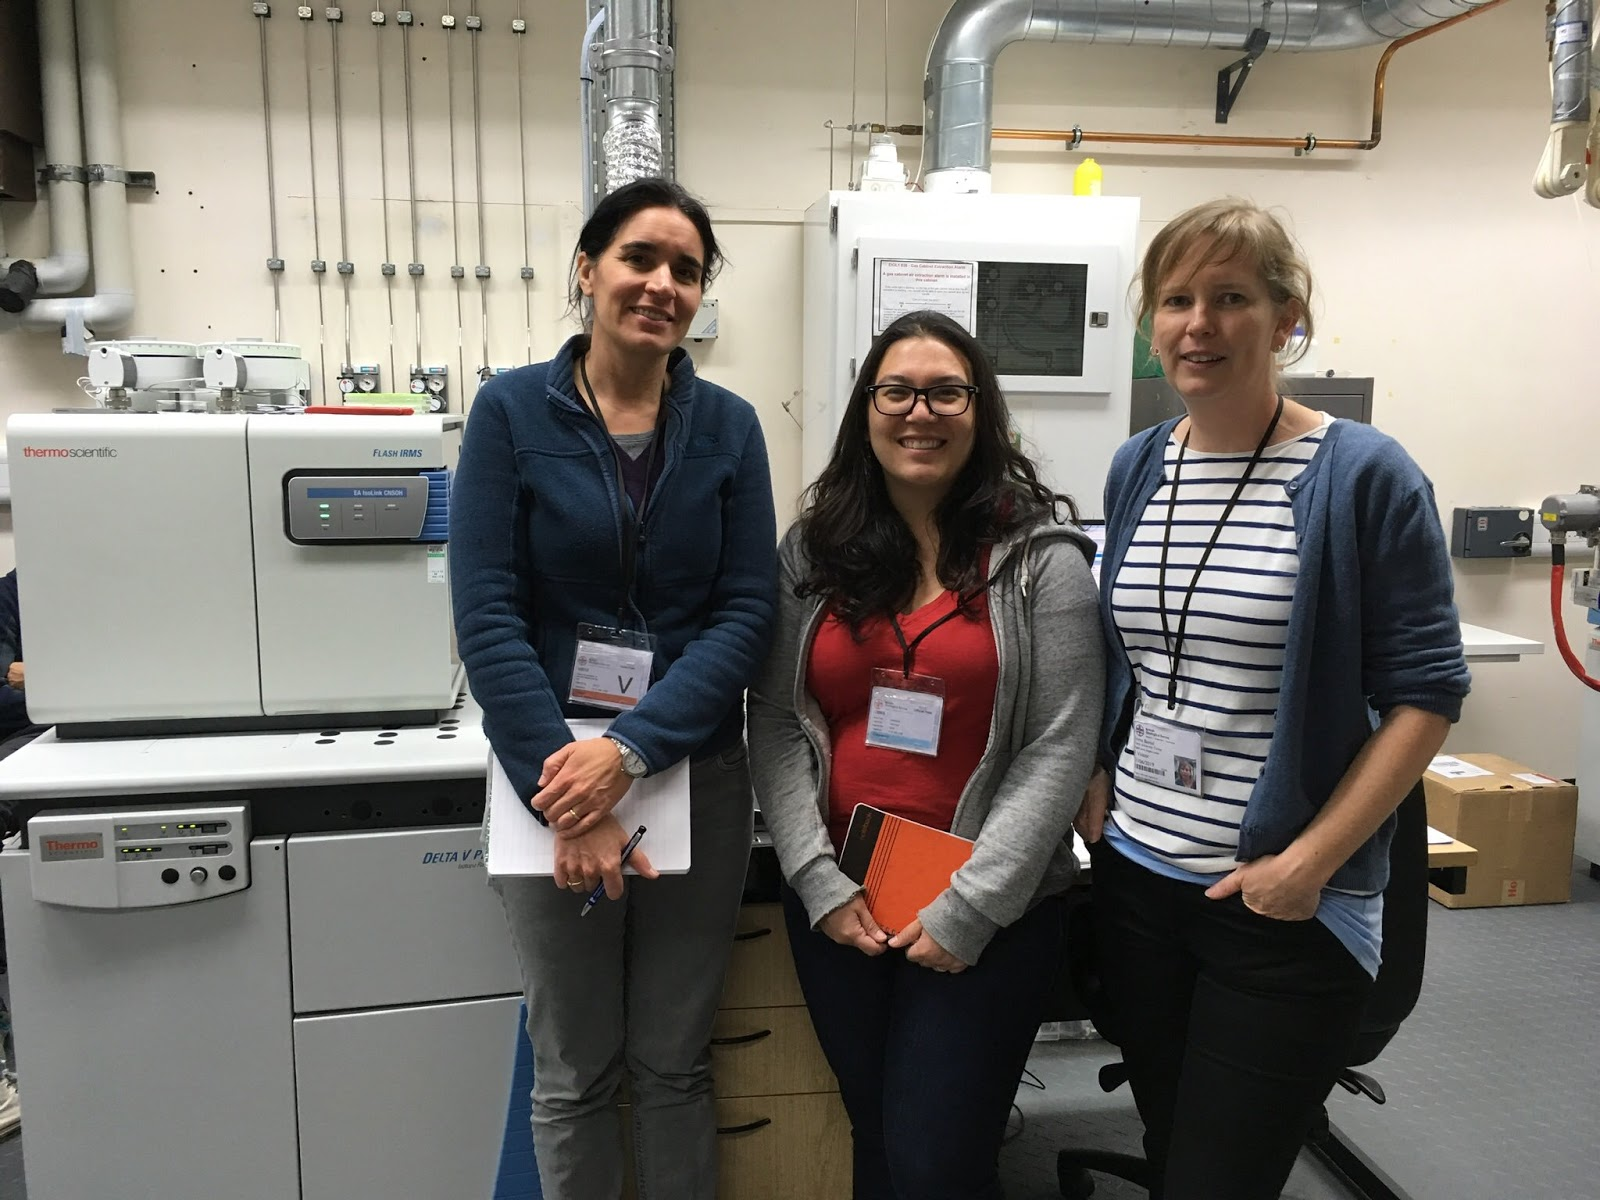 (L-R) Rana Özbal, Hannah Lau and Emma Baysal during their visit to the Stable Isotope Facility.